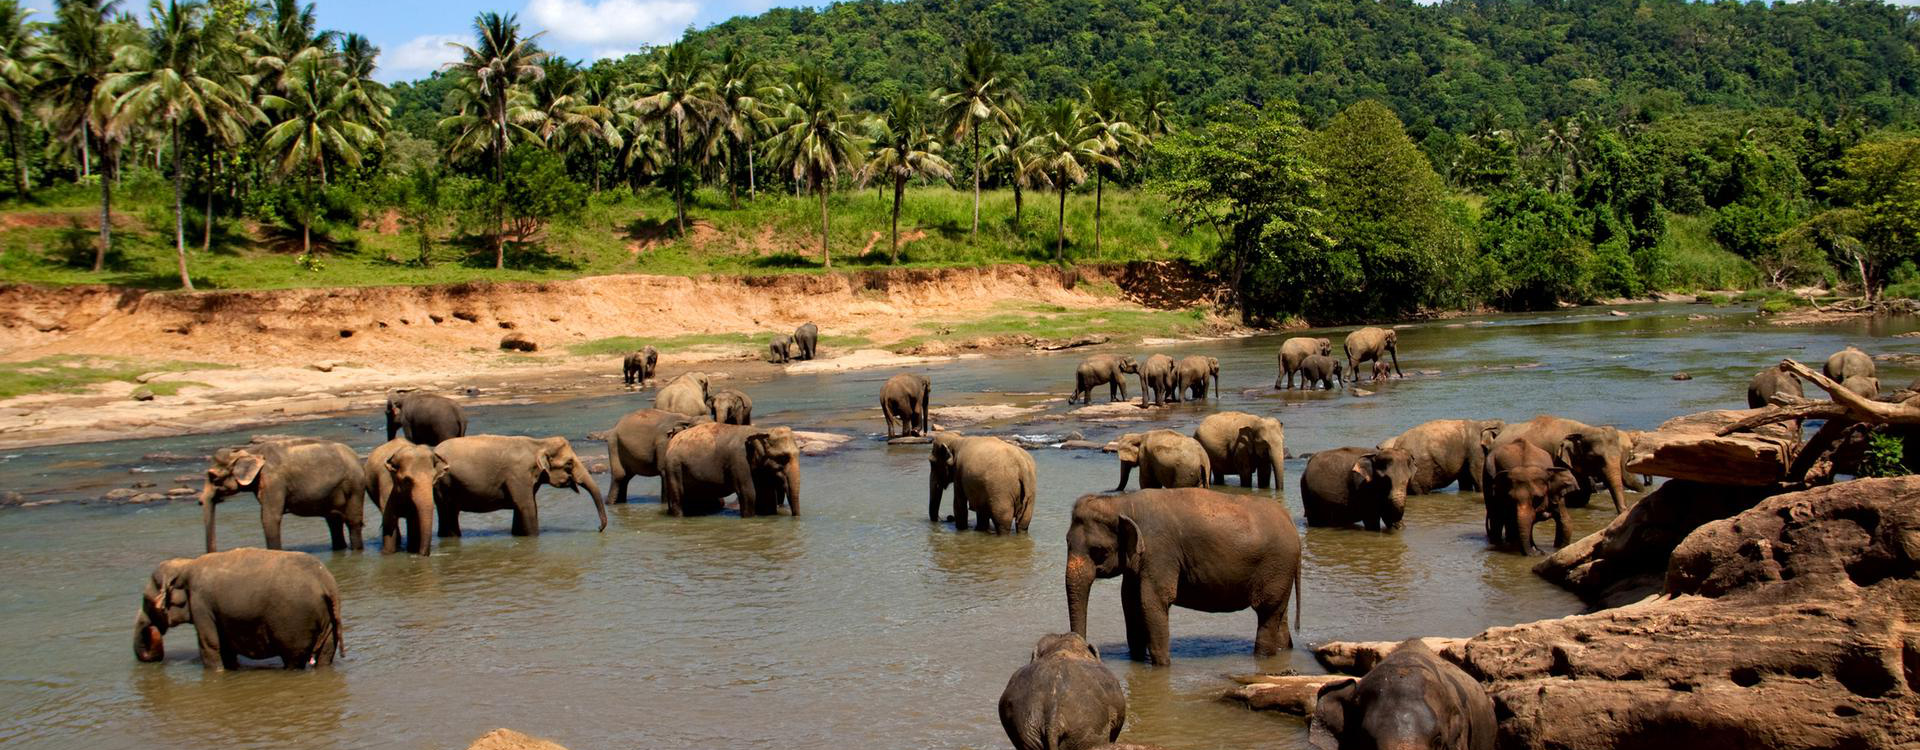 Sri-lanka-elephants